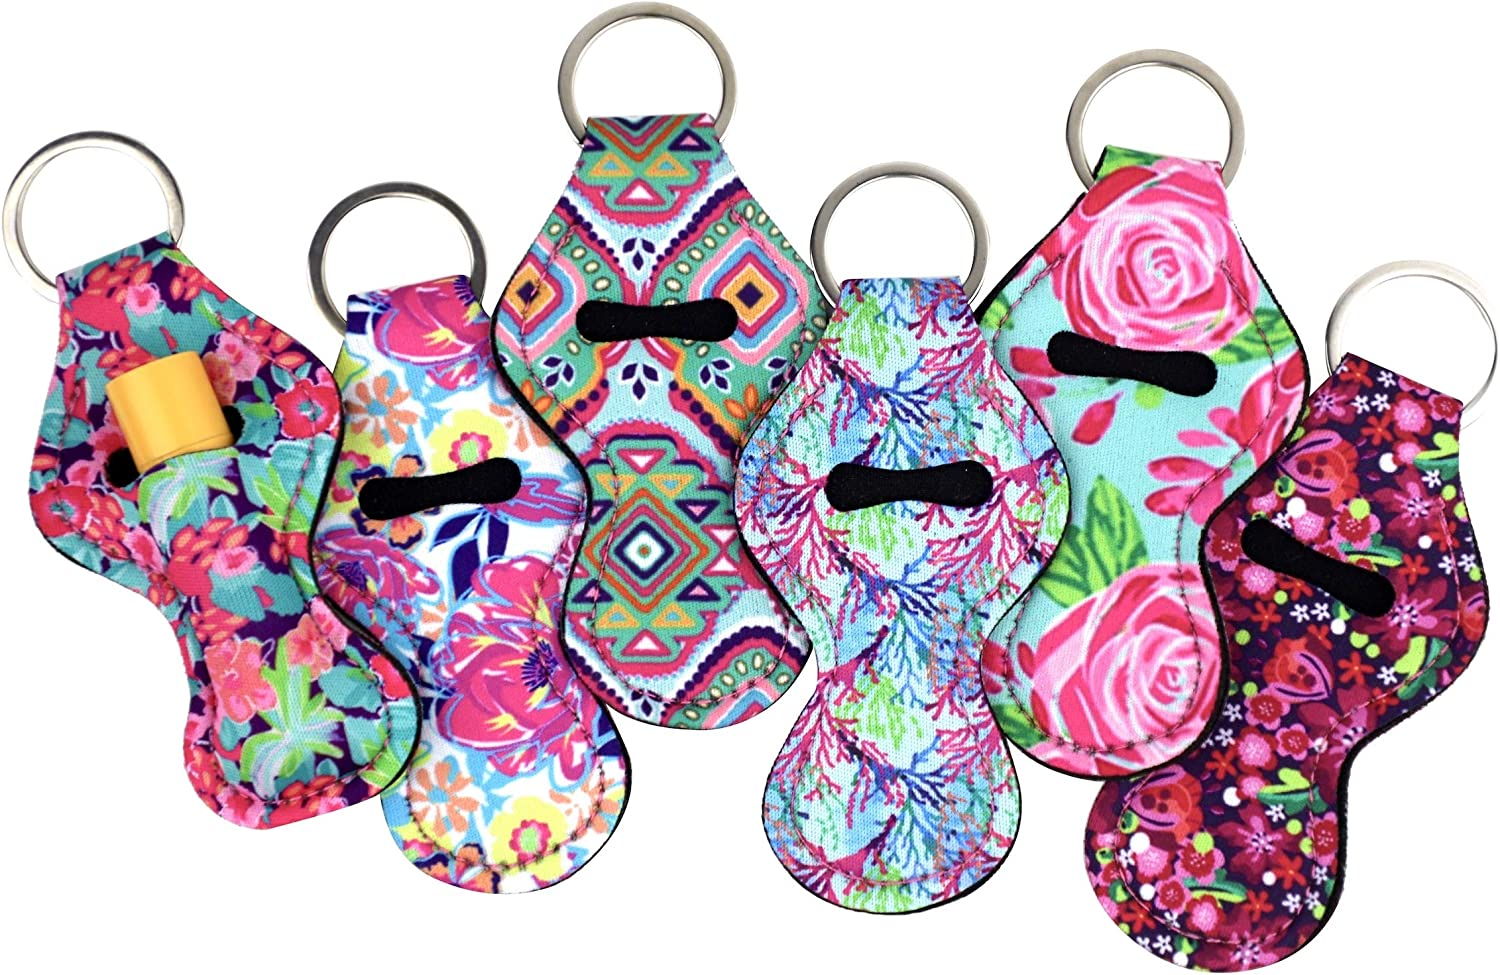 The Original Chapstick Holder Keychain, Cute Keychains for Lip Balm Holder (Multicolor 6 Pack) : Clothing, Shoes & Jewelry